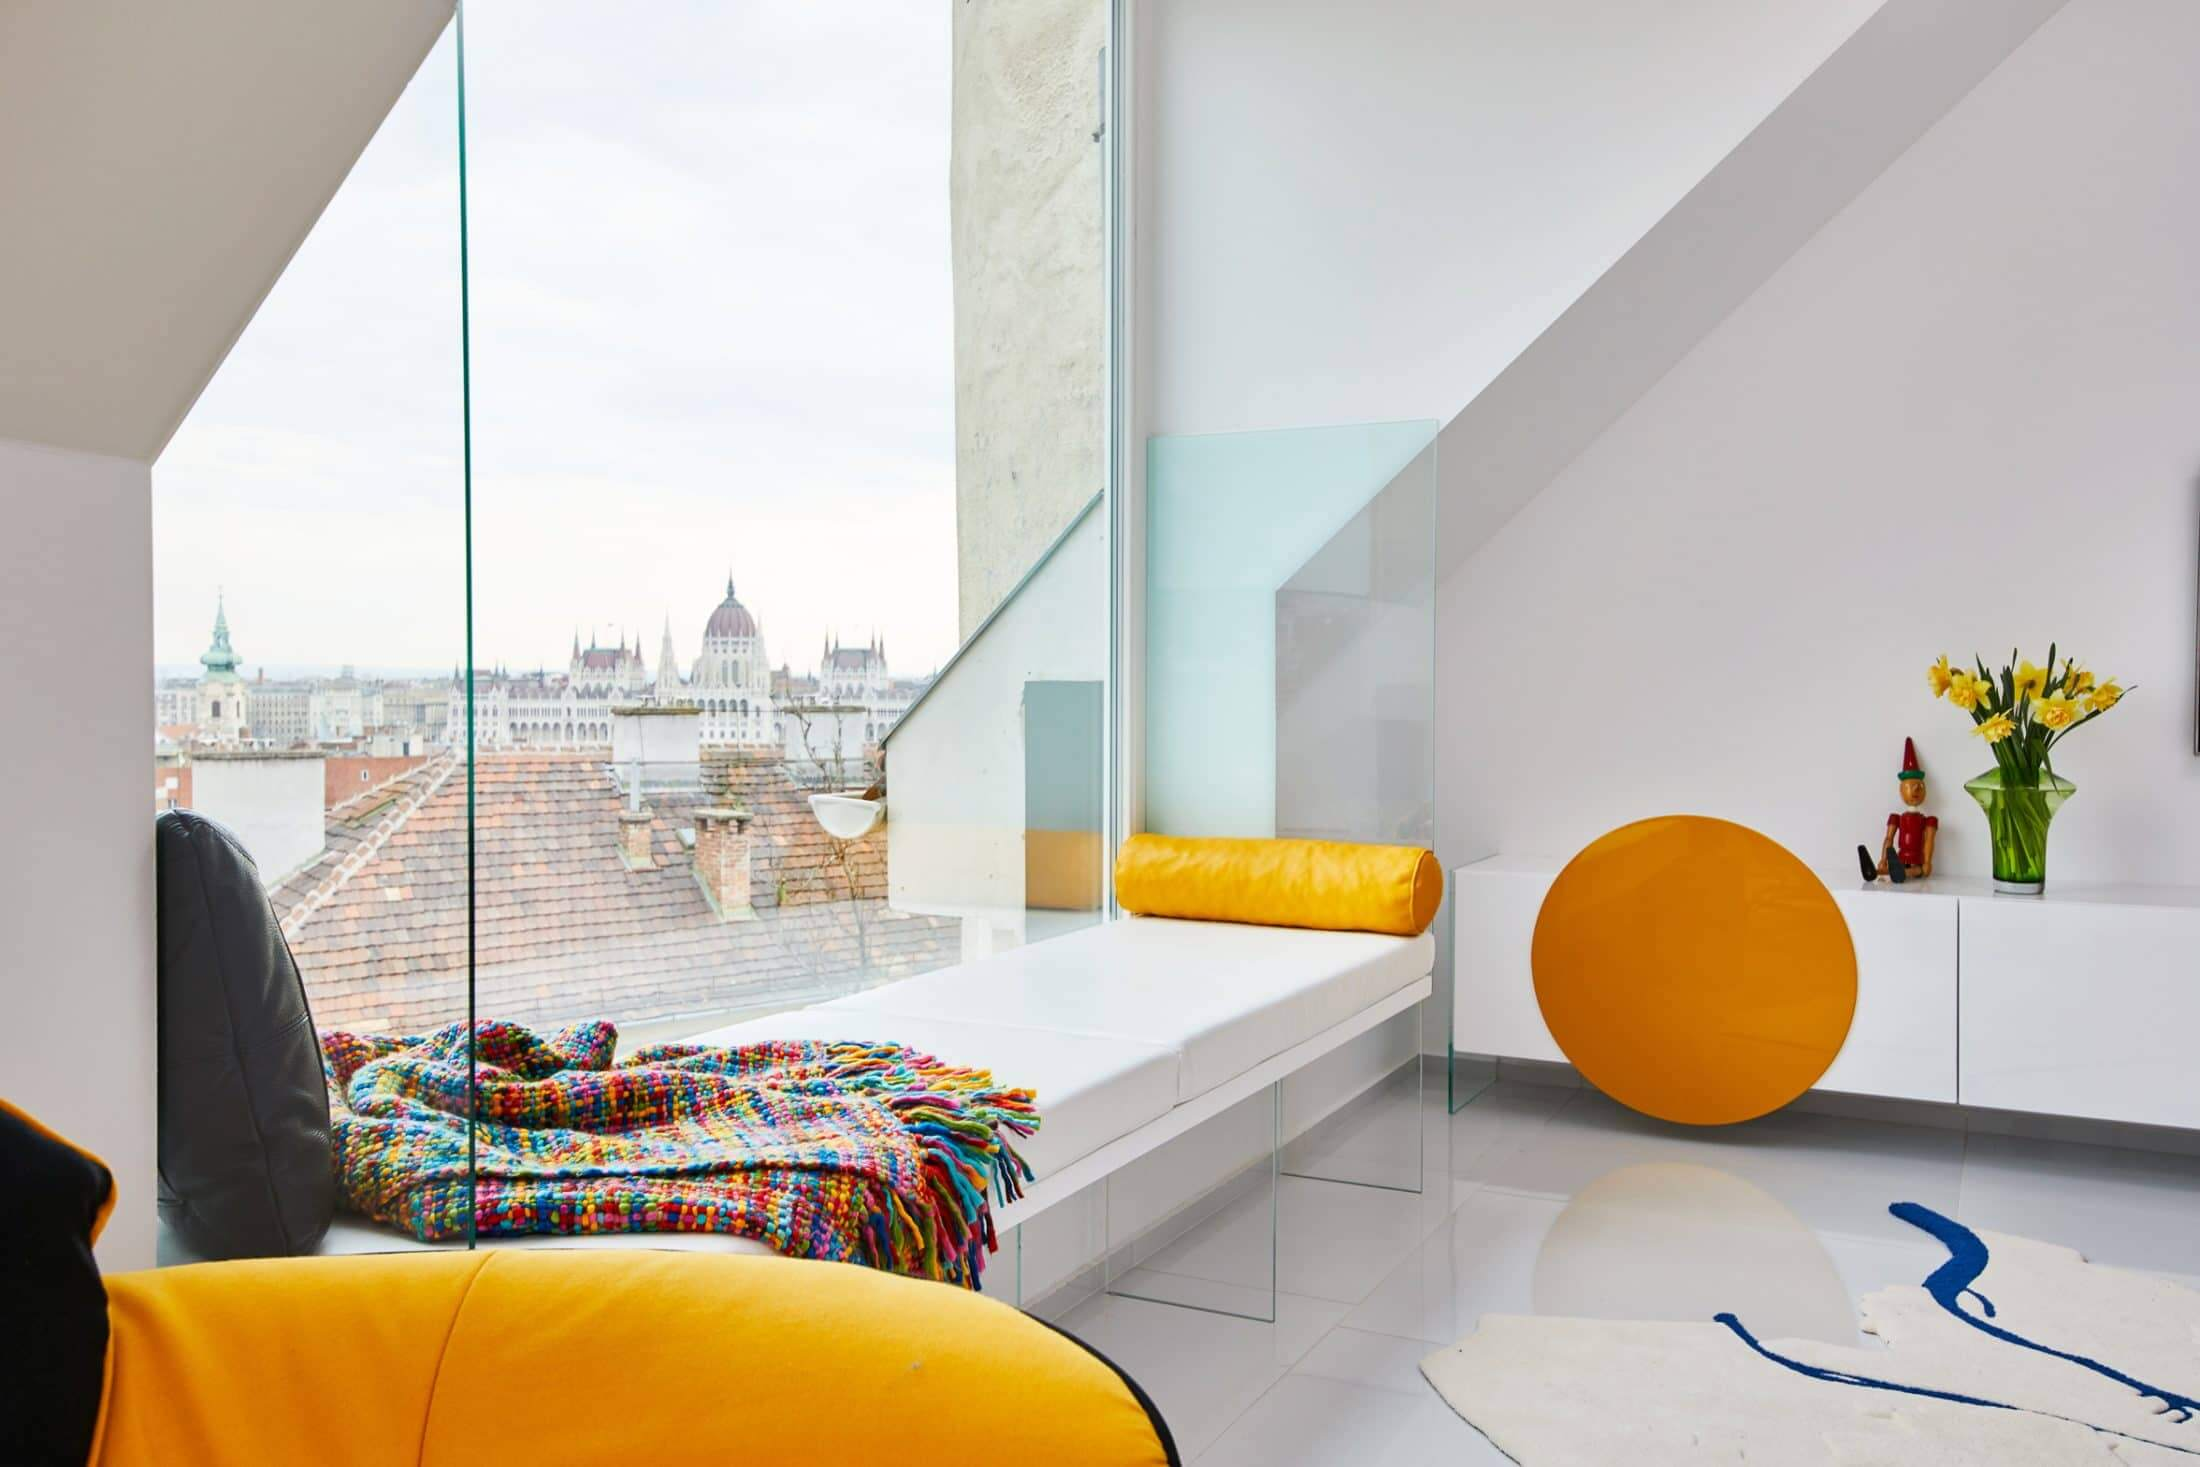 Colorful Apartment in The Heart Of Budapest  living room inspiration Living Room Inspiration: Colorful Apartment in The Heart Of Budapest Colorful Apartment in The Heart Of Budapest